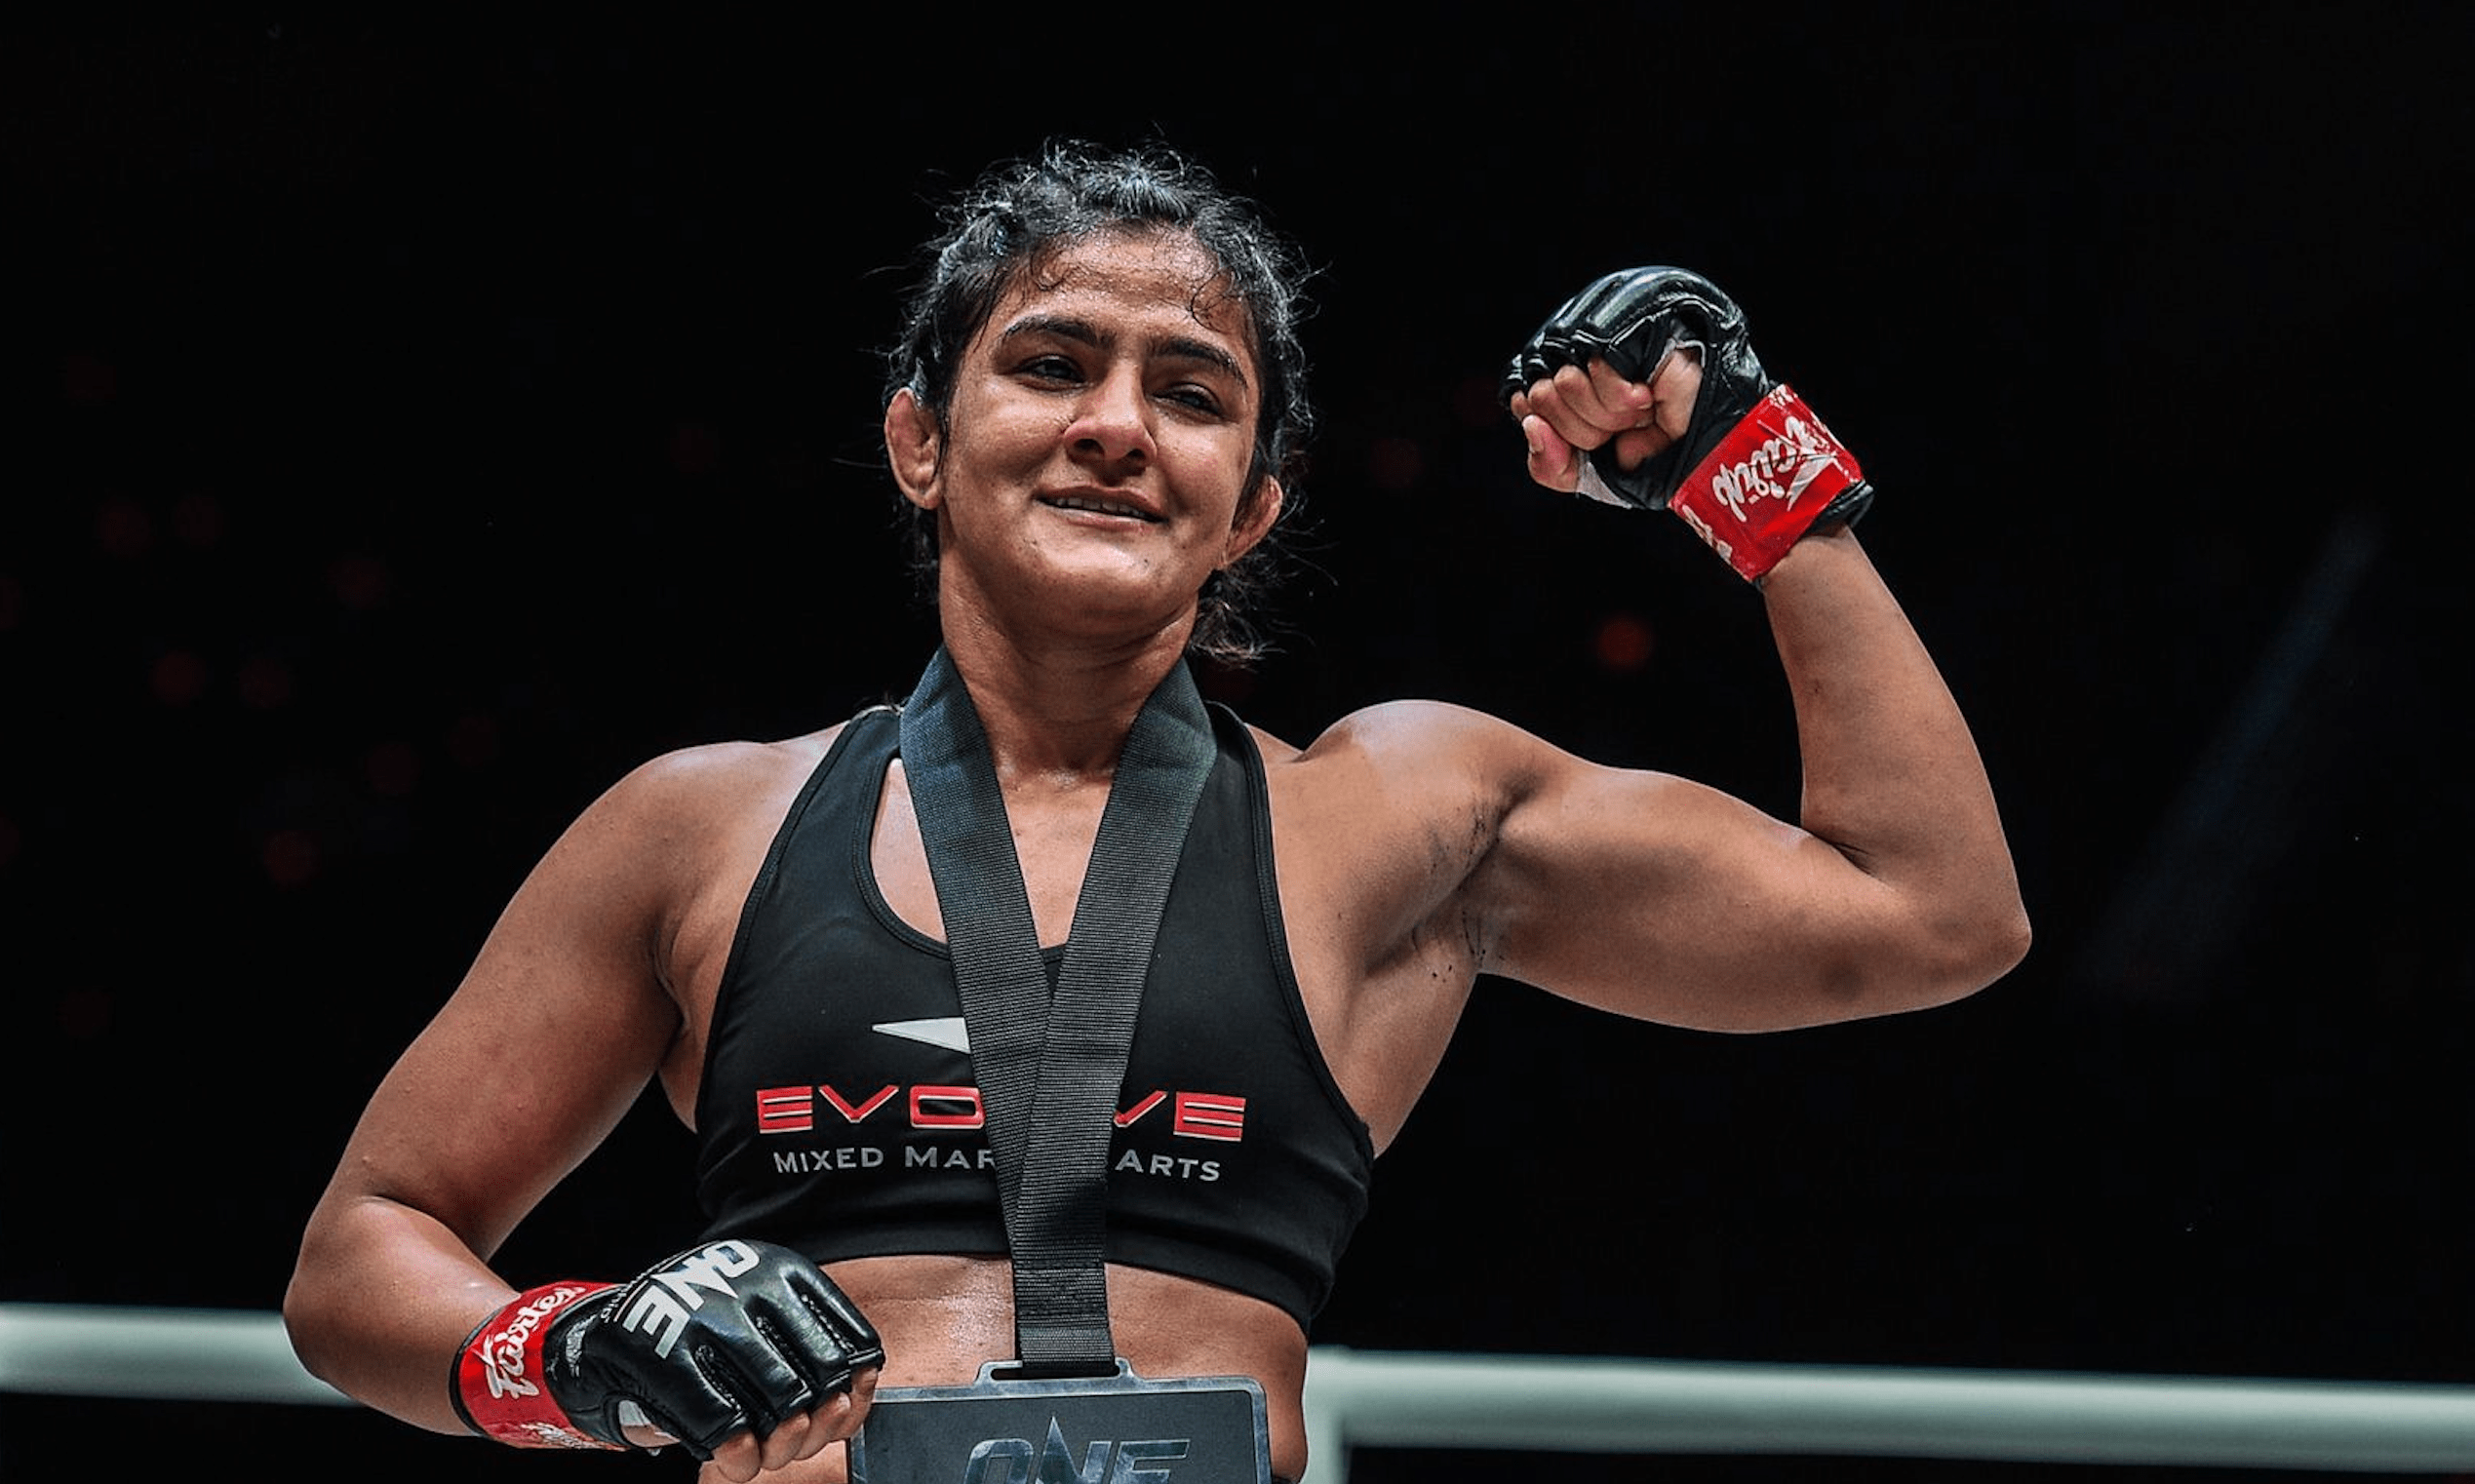 Ritu Phogat Hoping To End Year On A Winning Note